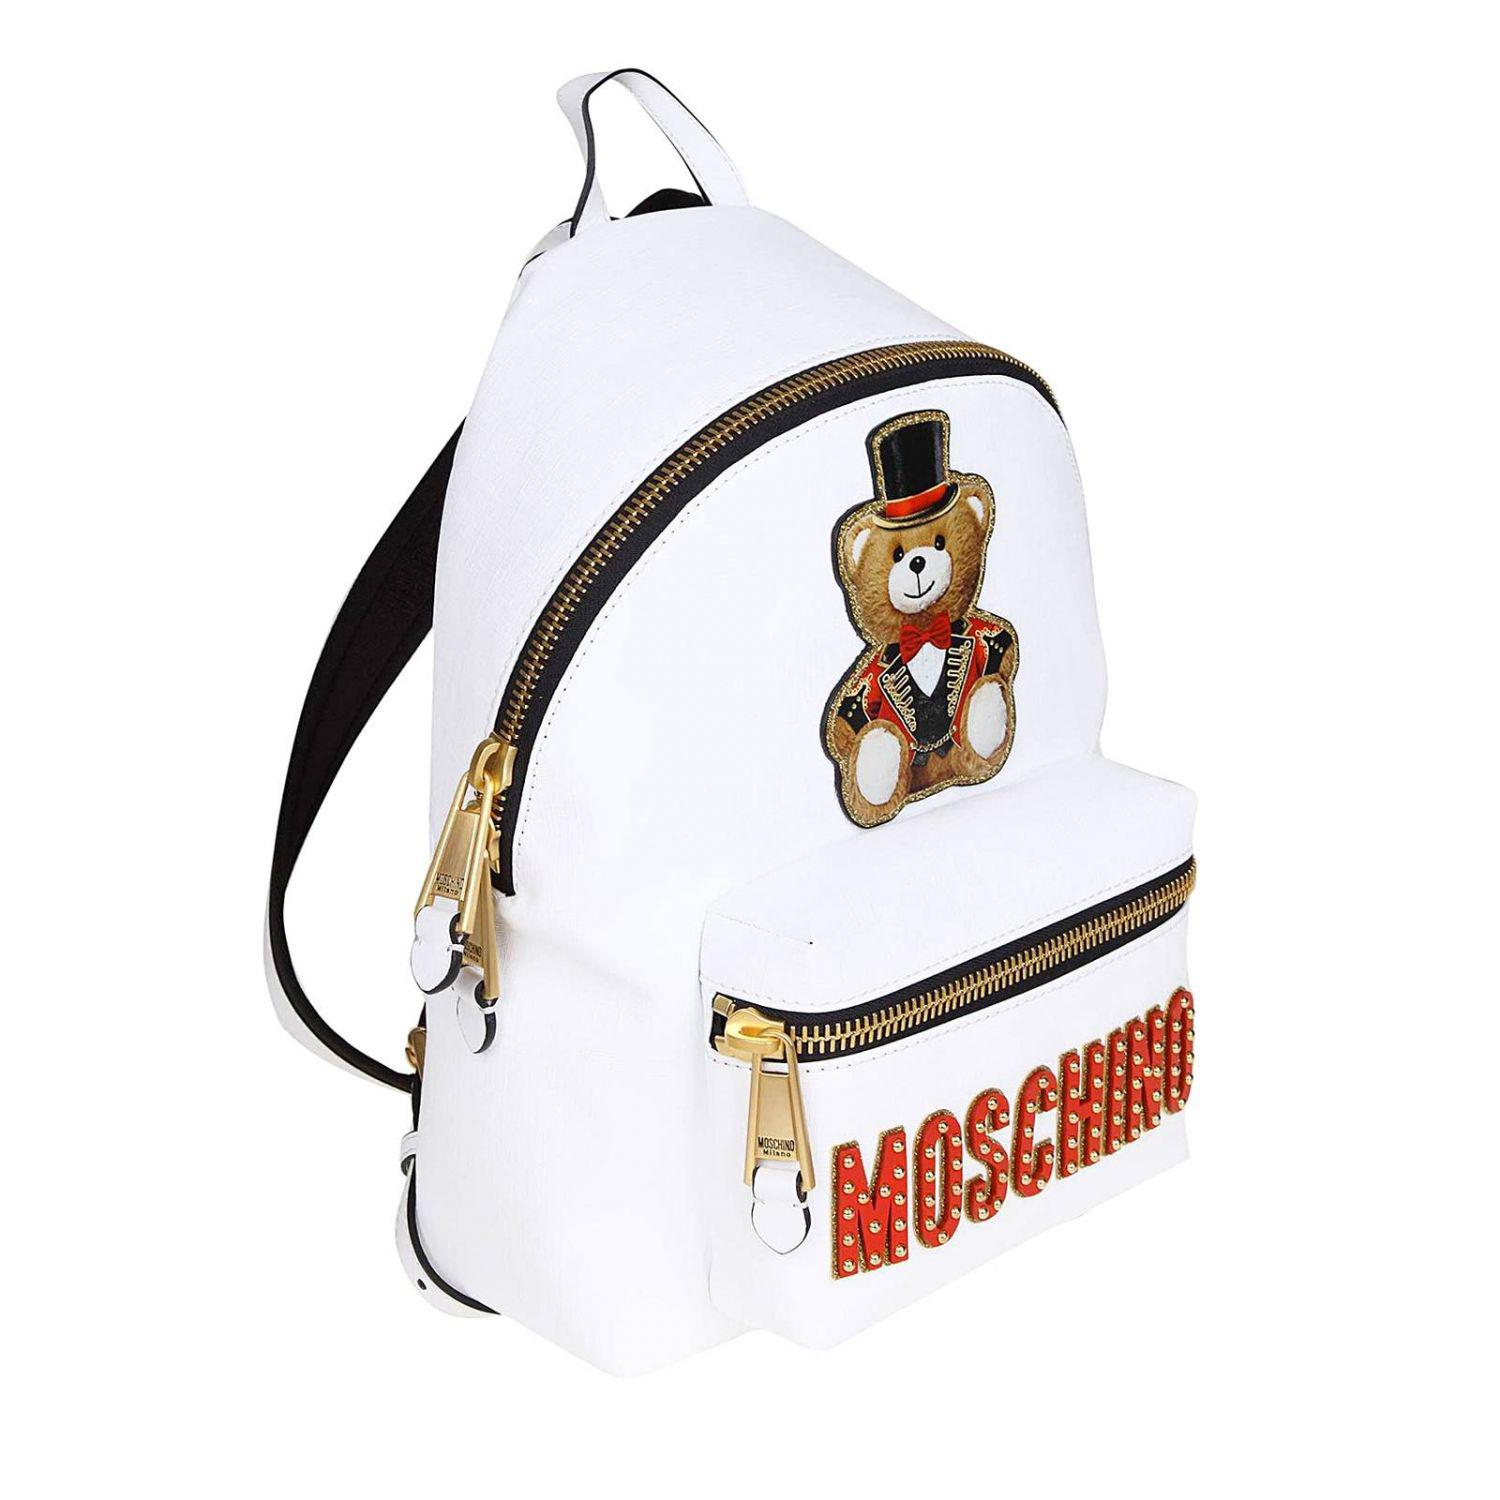 3c824000ad Moschino Couture - White Backpack Women - Lyst. View fullscreen